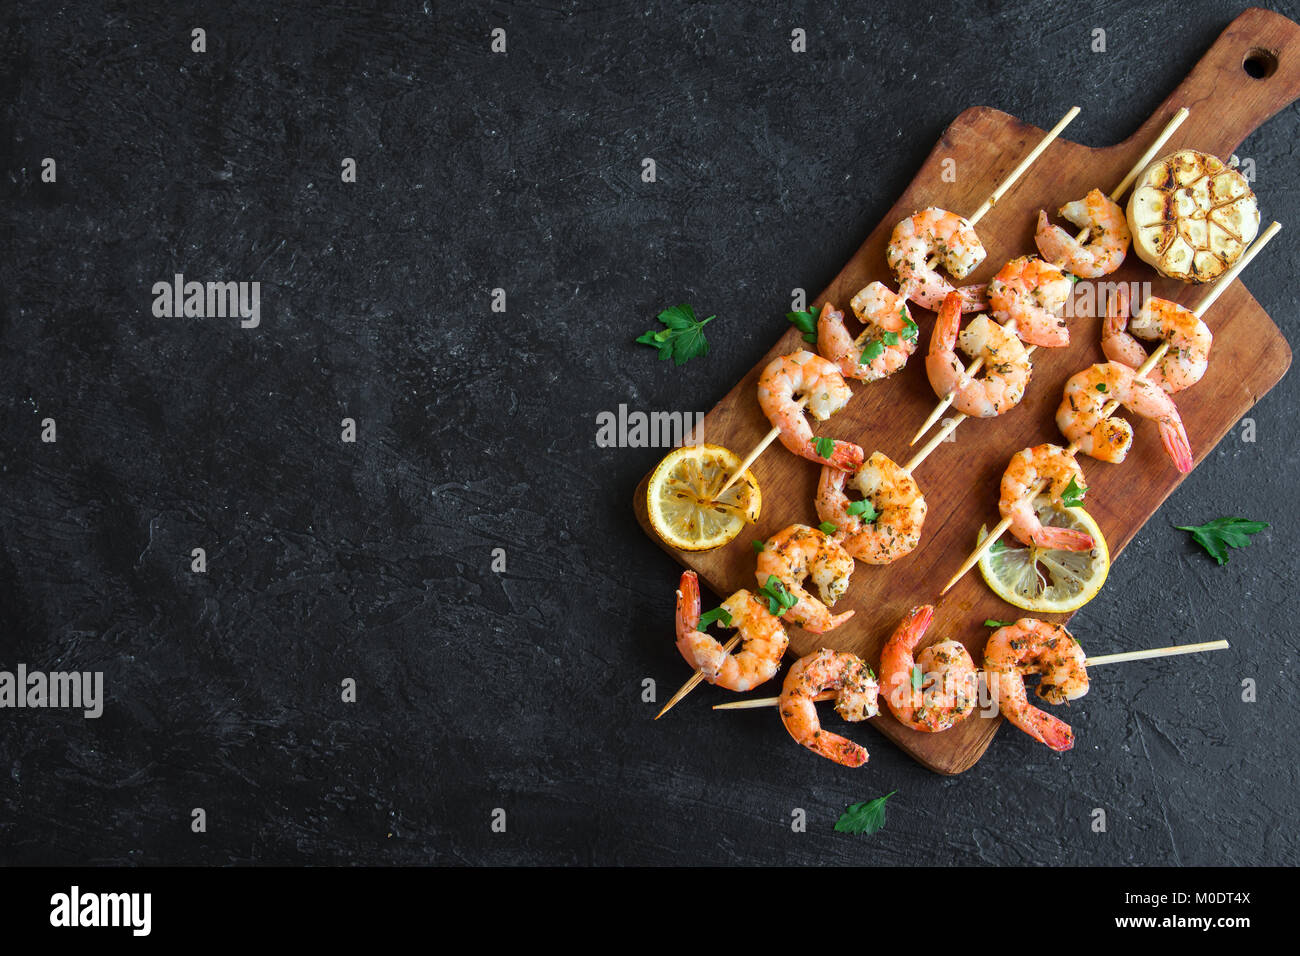 Grilled shrimp skewers. Seafood, shelfish. Shrimps Prawns skewers with herbs, garlic and lemon on black stone background, - Stock Image